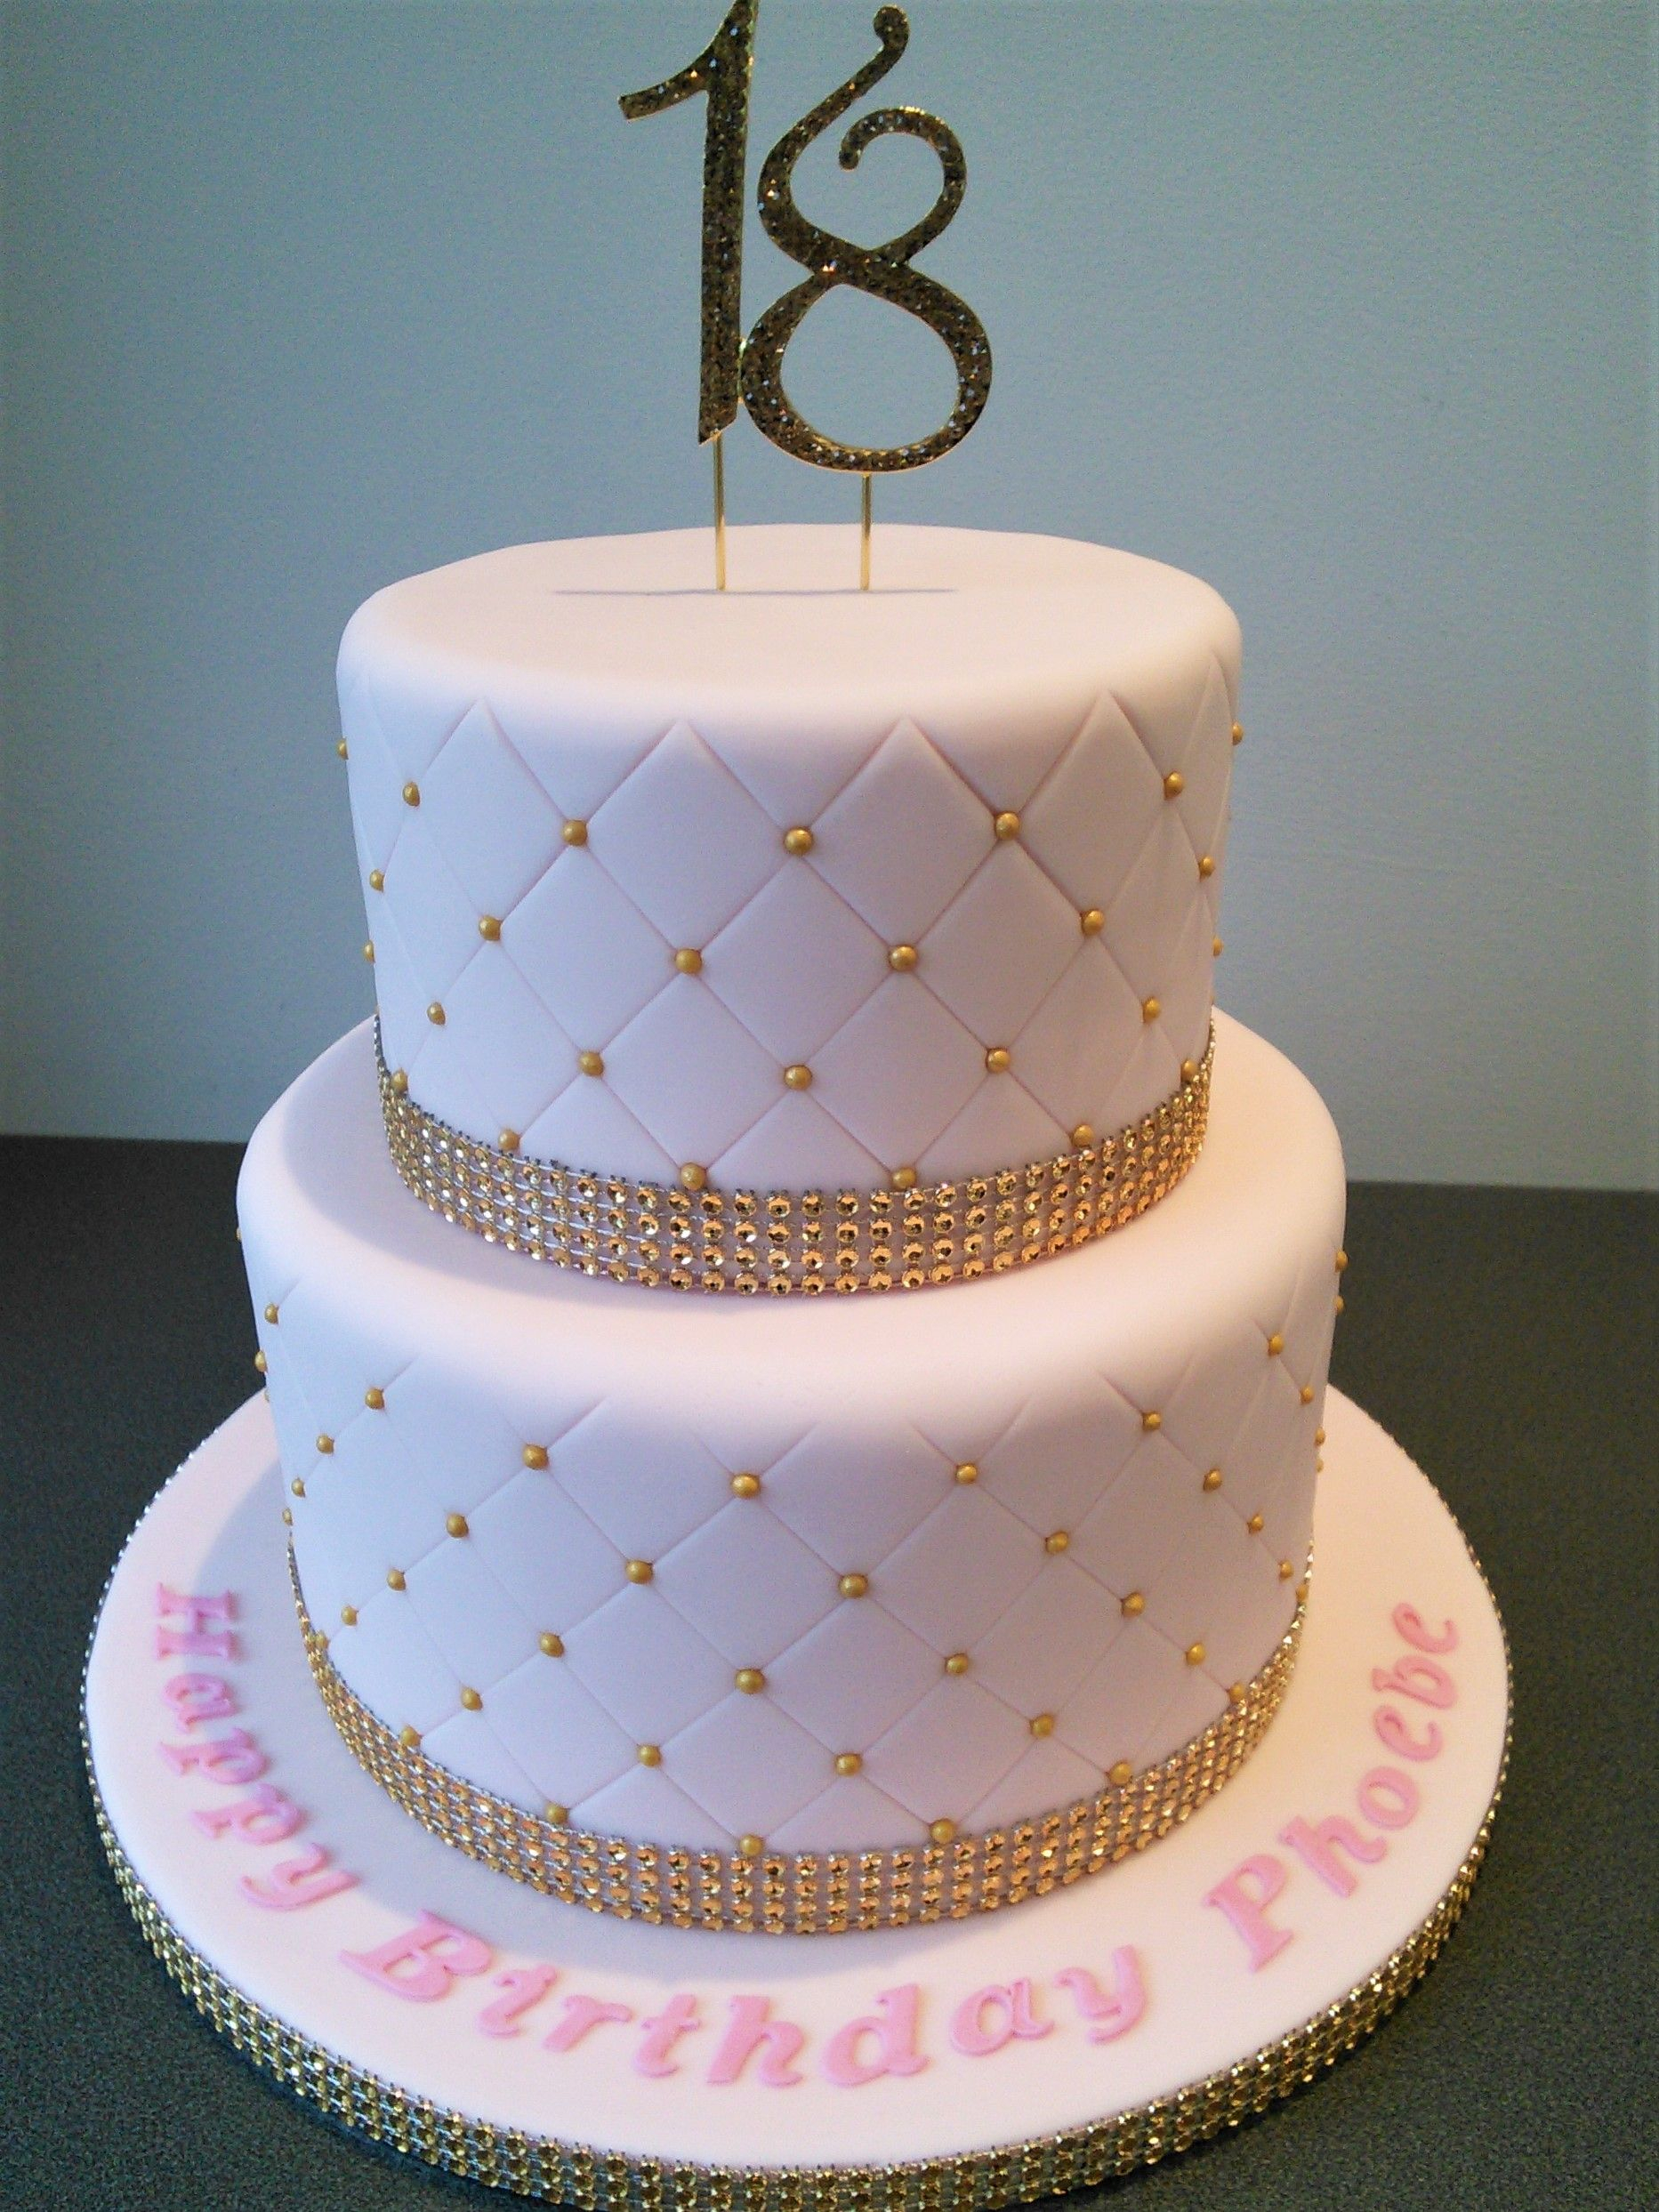 18 Birthday Cake Pink And Gold Quilted 18th Birthday Cake 18th Birthday Cake